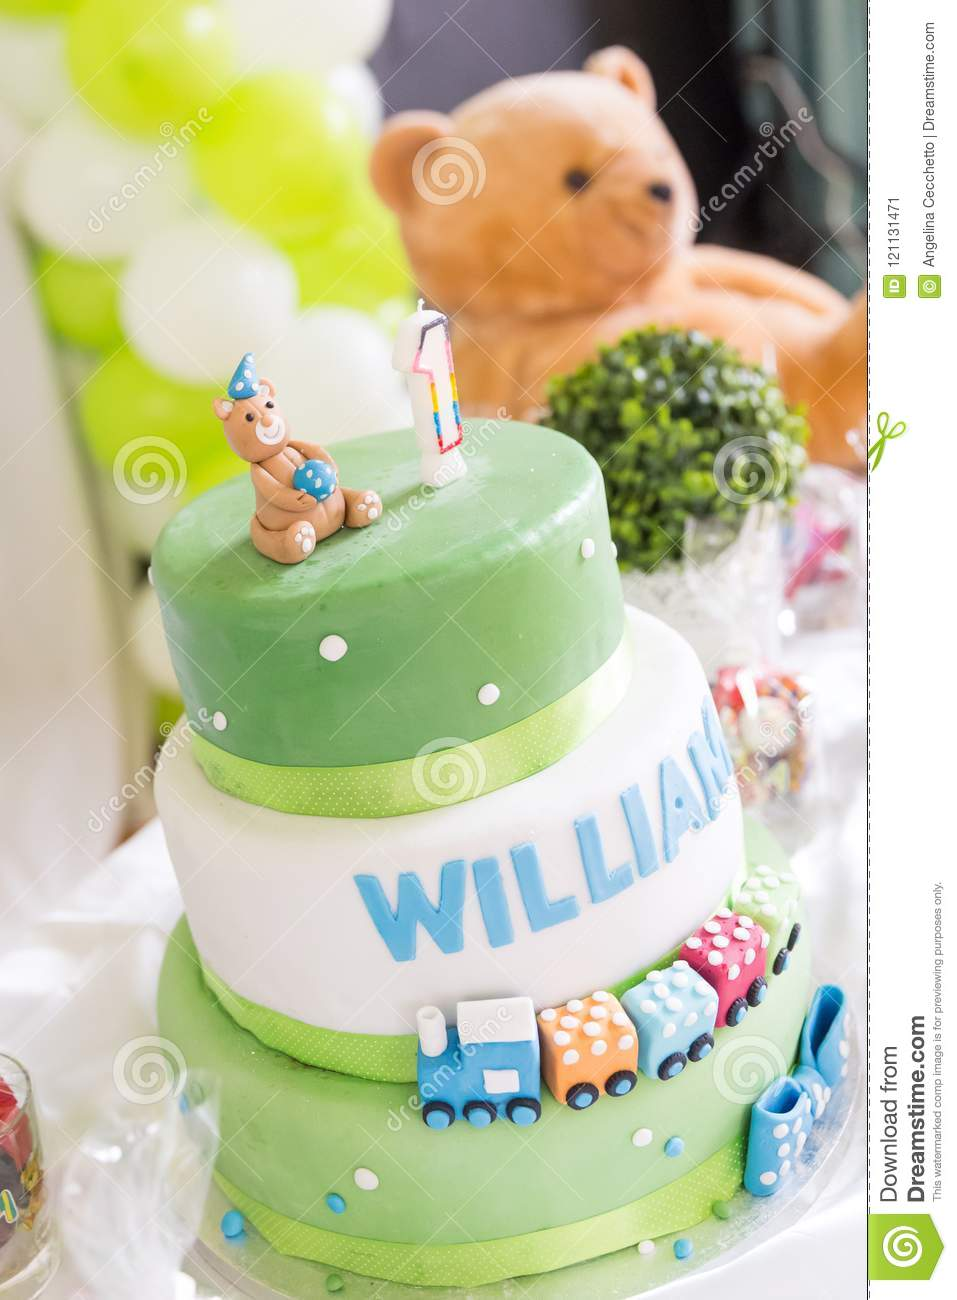 Green And White Birthday Cake With One Year Old Candle Teddy